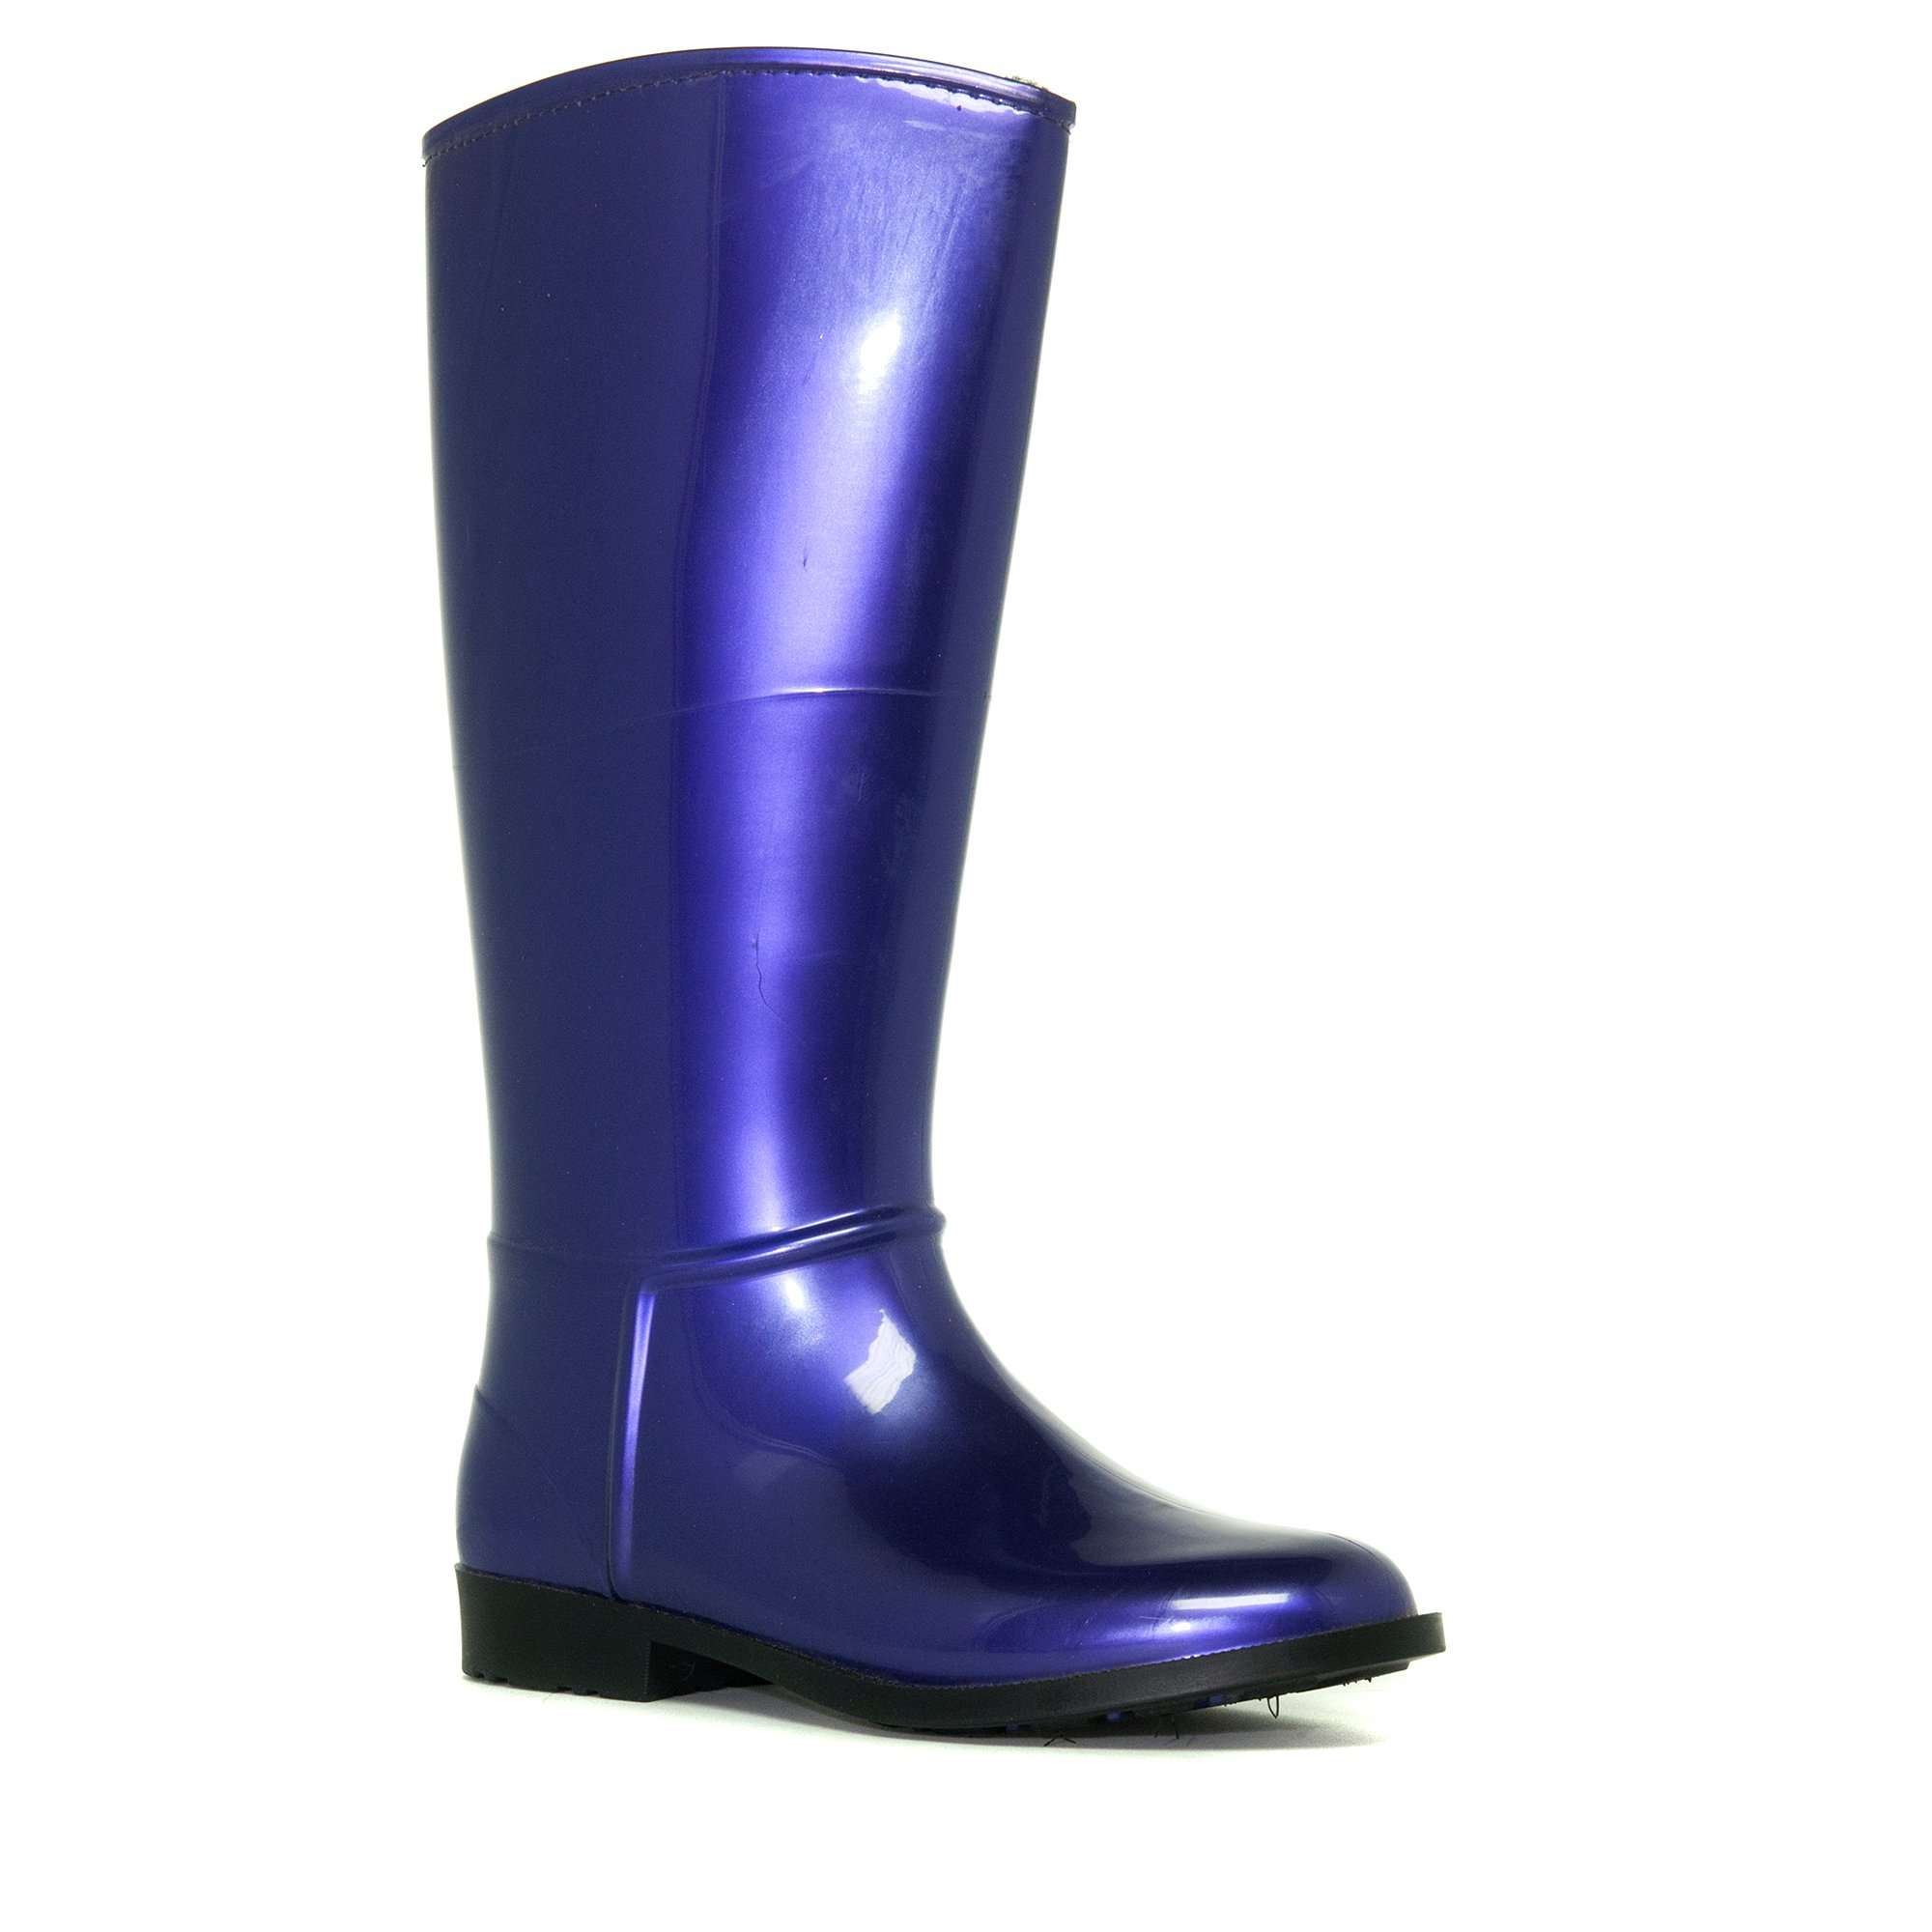 O.B. Women's Moon Wellies